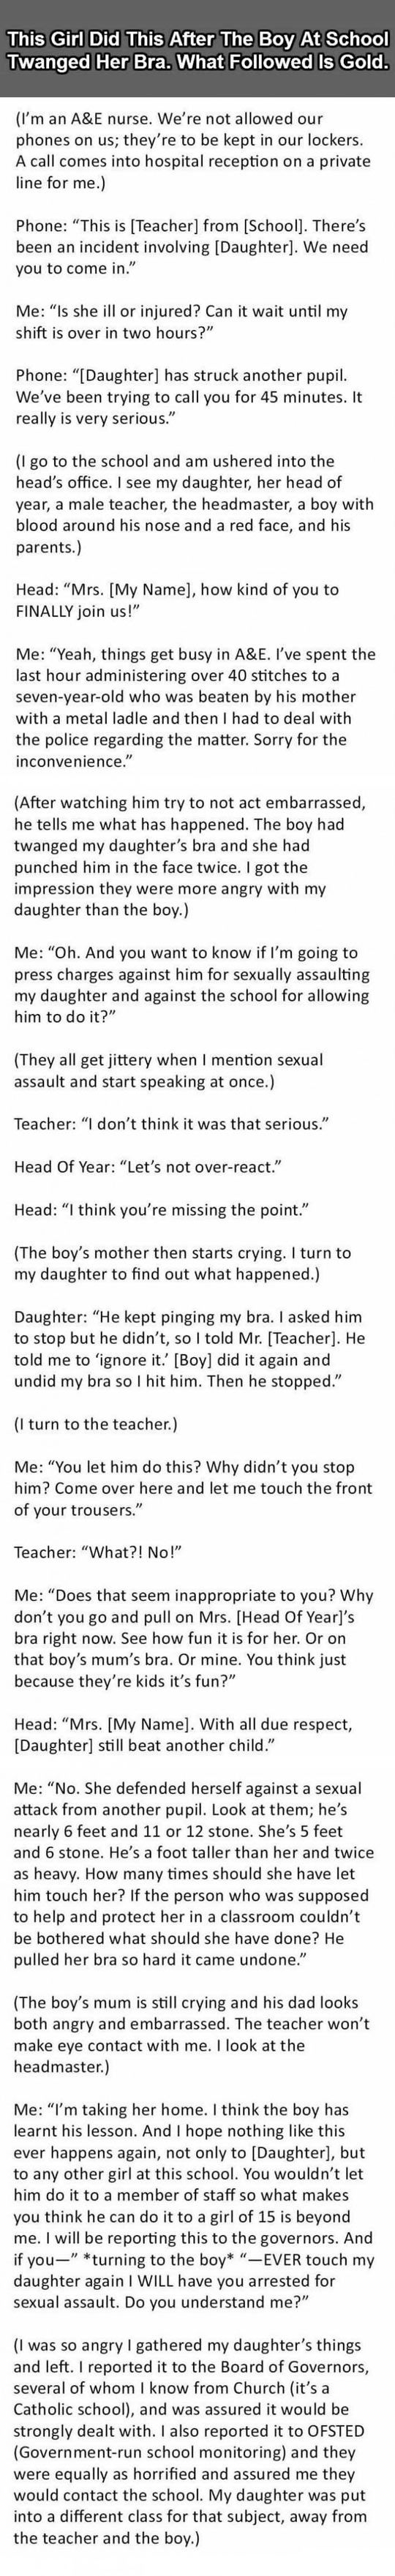 123 best Girls images on Pinterest | Equality, Funny stuff and Funny ...